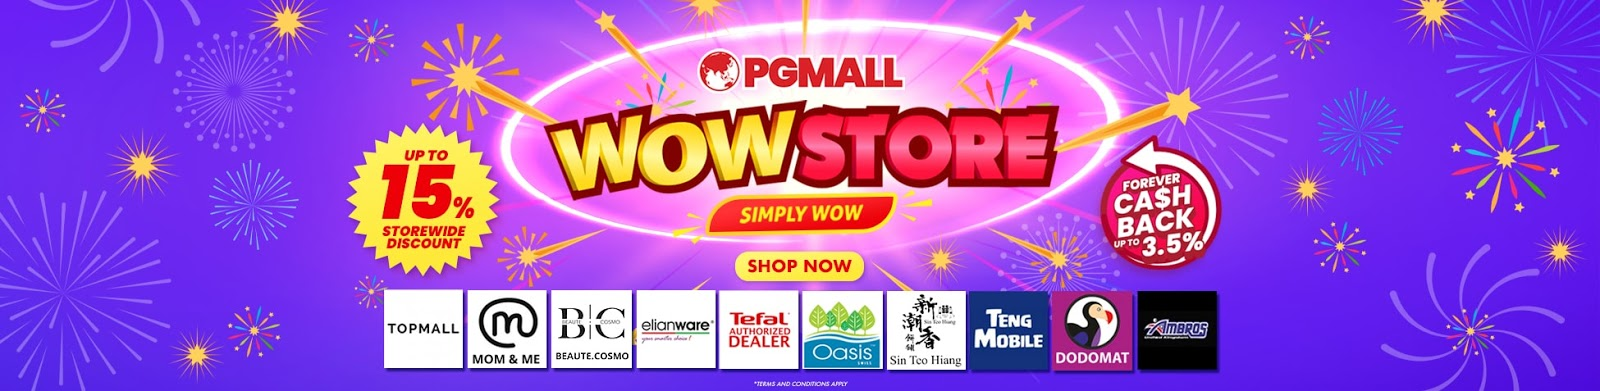 pgmall wowstore shop now